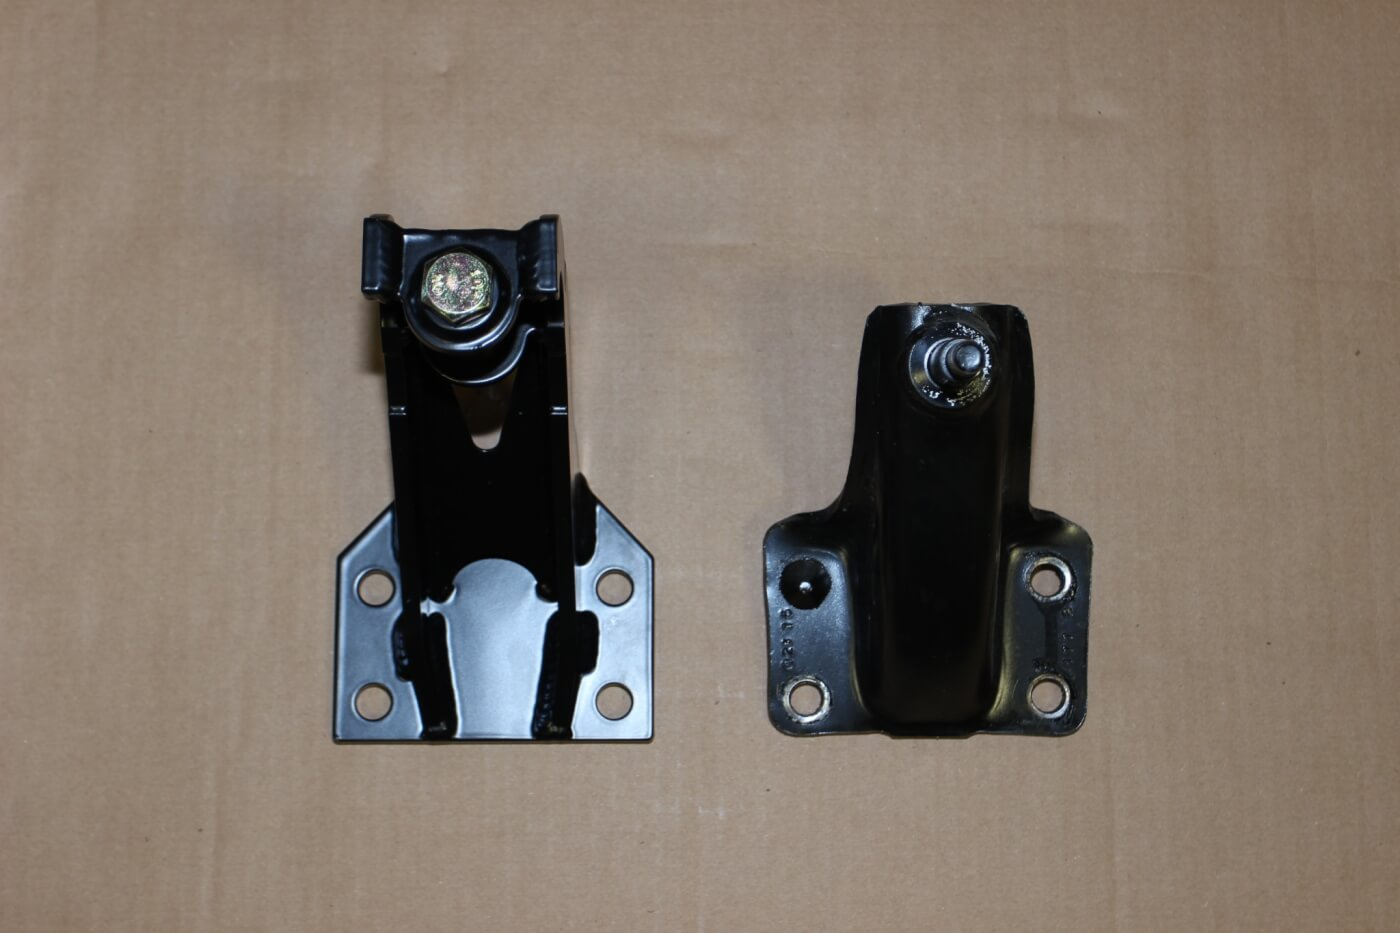 13. Here you see the new Carli rear shock mount (L) compared to the OEM mount. The OEM mount must be cut off the frame since it is riveted.